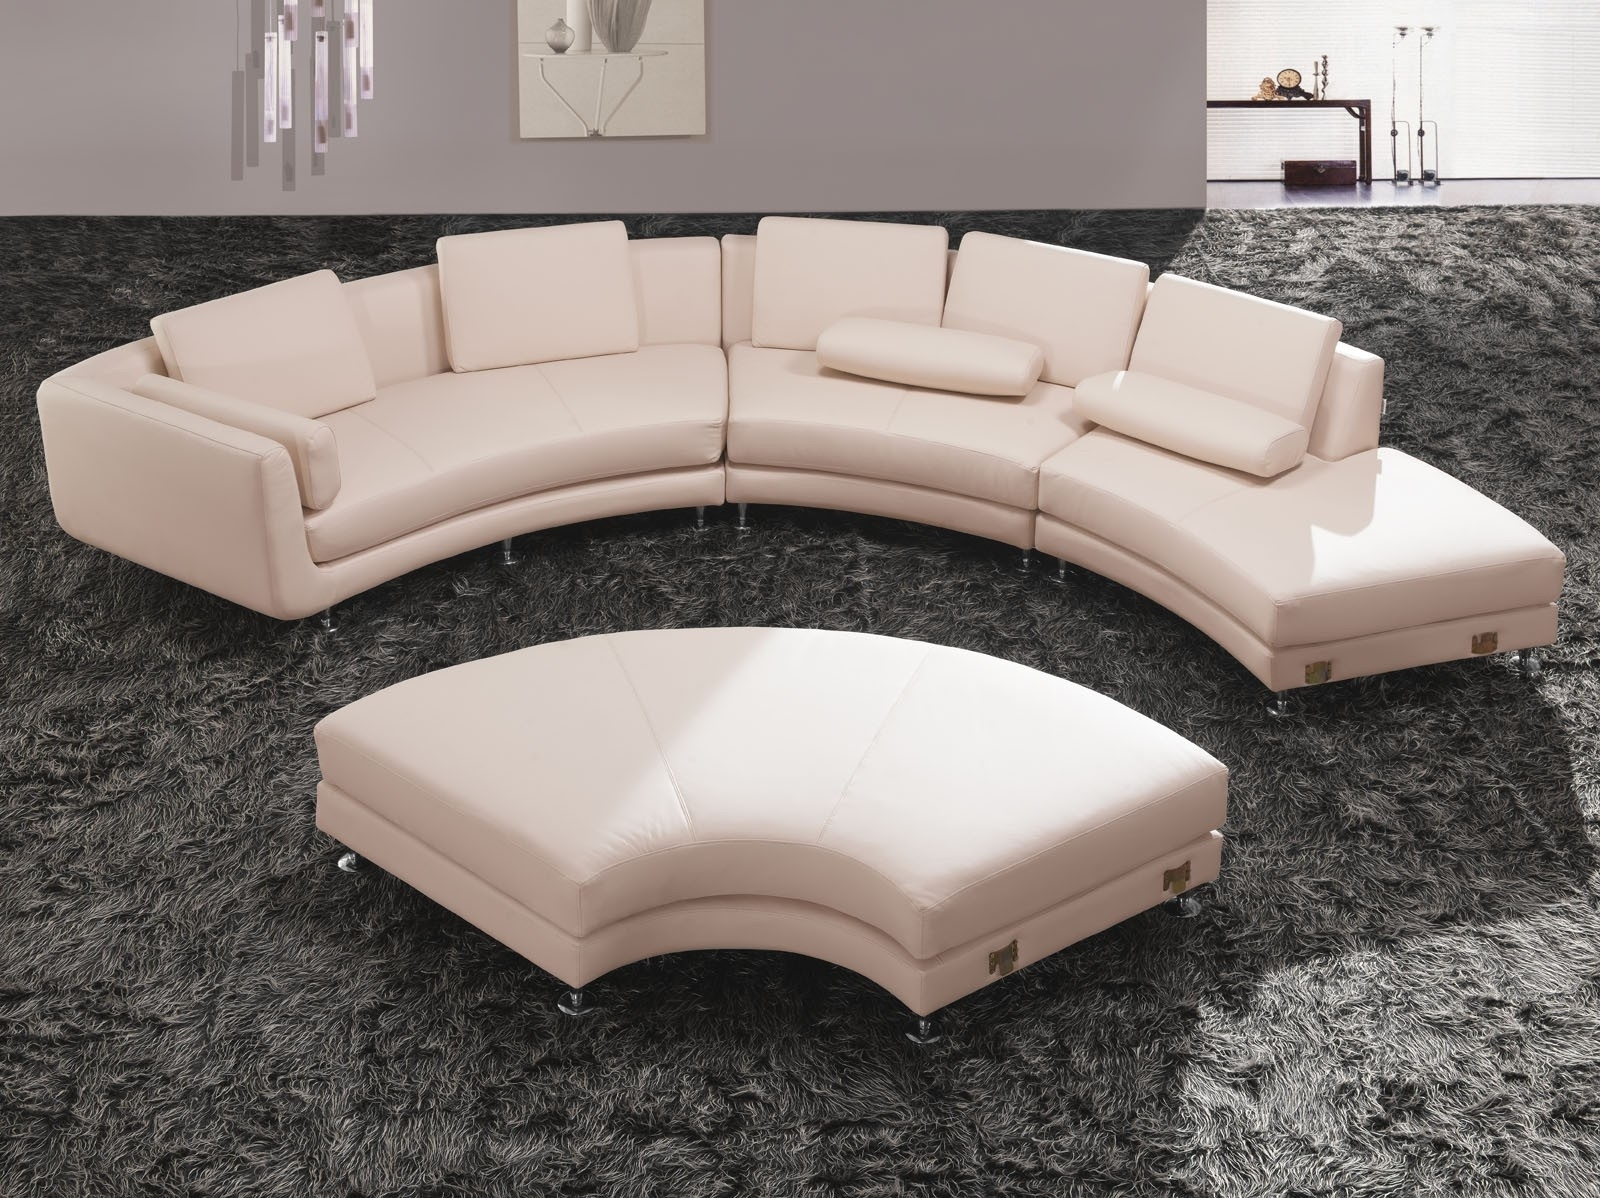 Sofa : Glamorous Round Sectional Sofa Bed Curved Leather Tufted Regarding Circular Sectional Sofas (View 2 of 10)